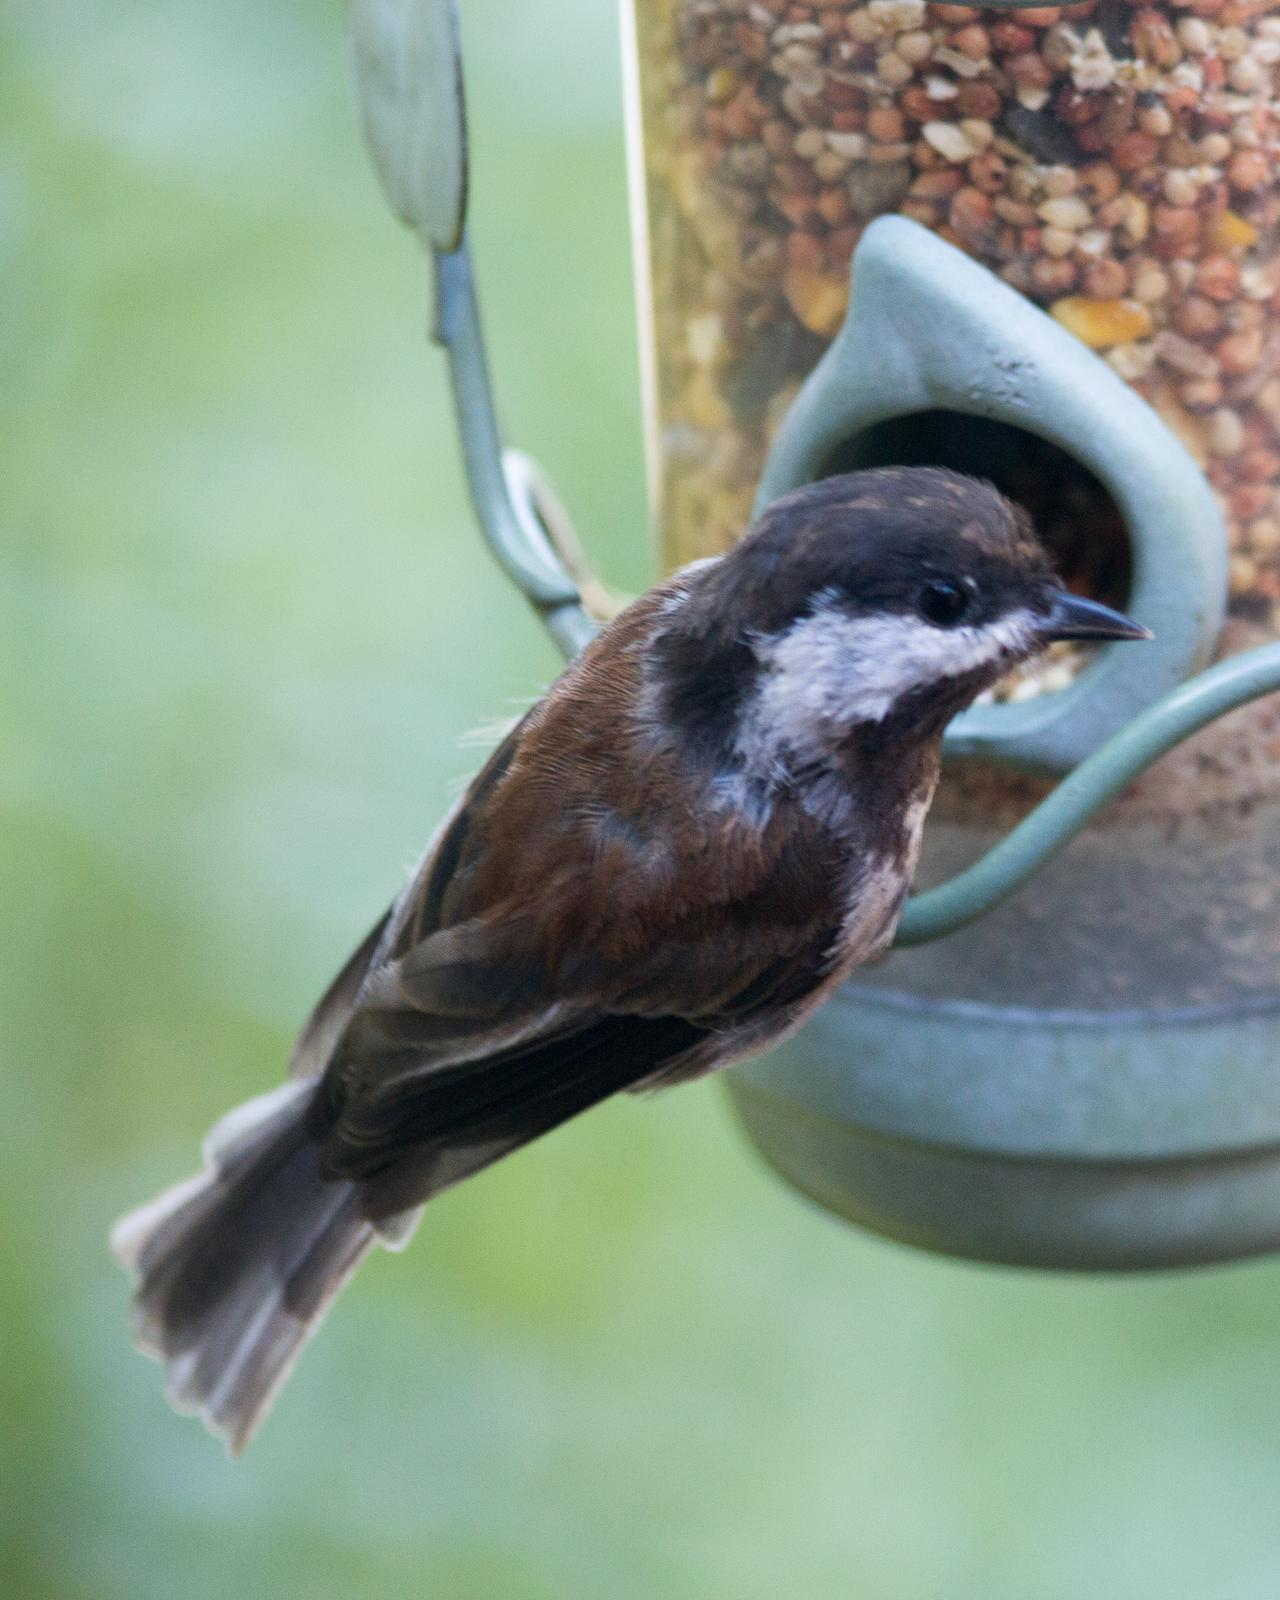 Chestnut-backed Chickadee Photo by Dylan Steinberg